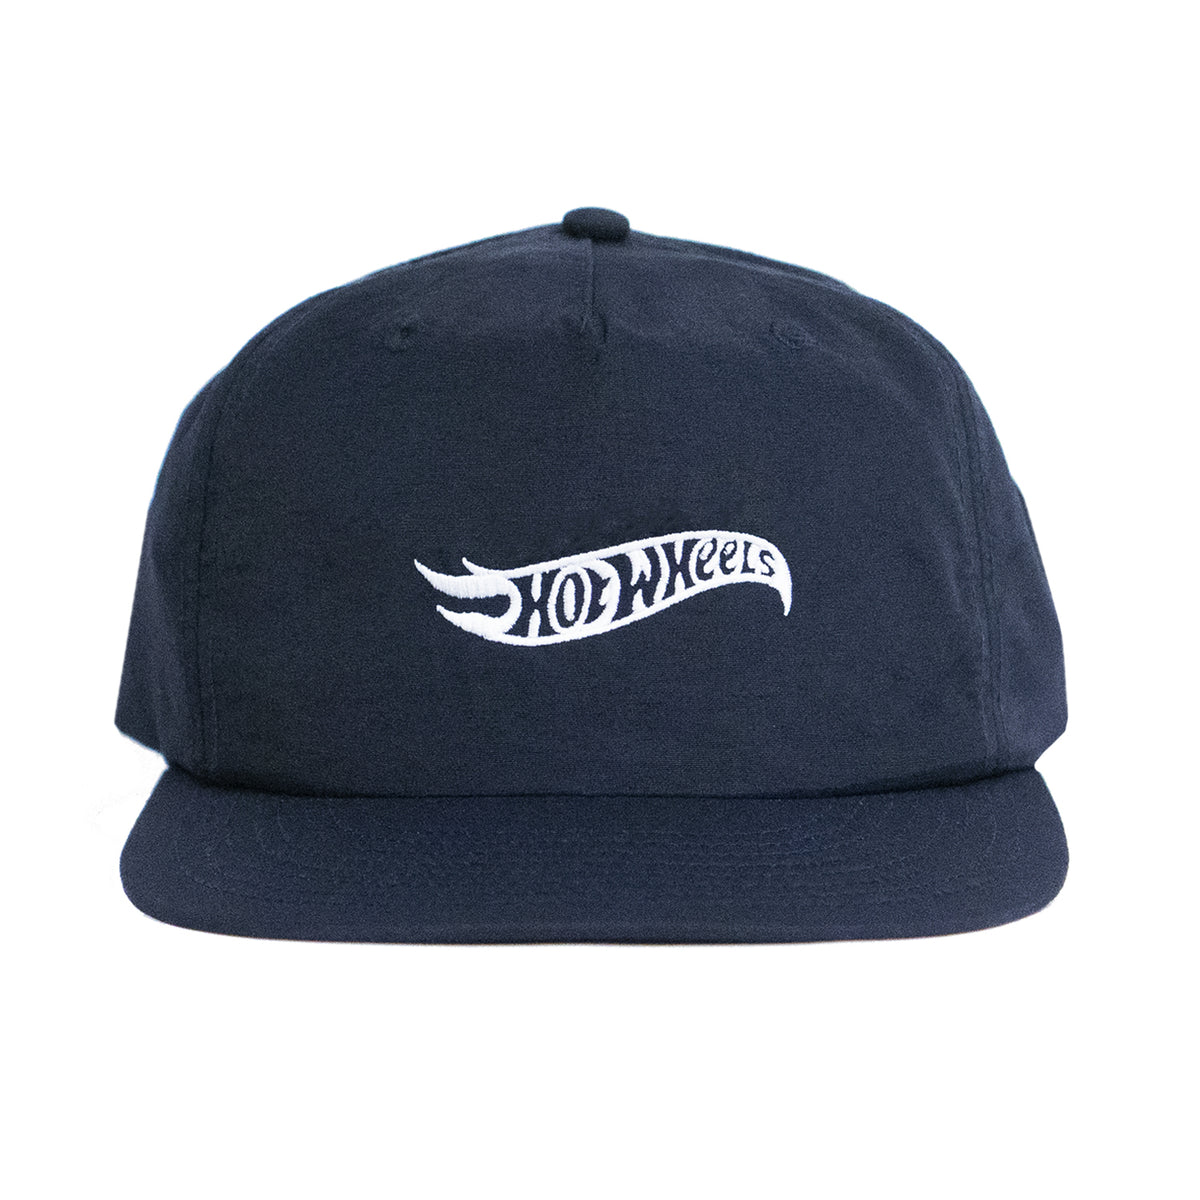 HOT WHEELS ENGINEERING CO. CAP